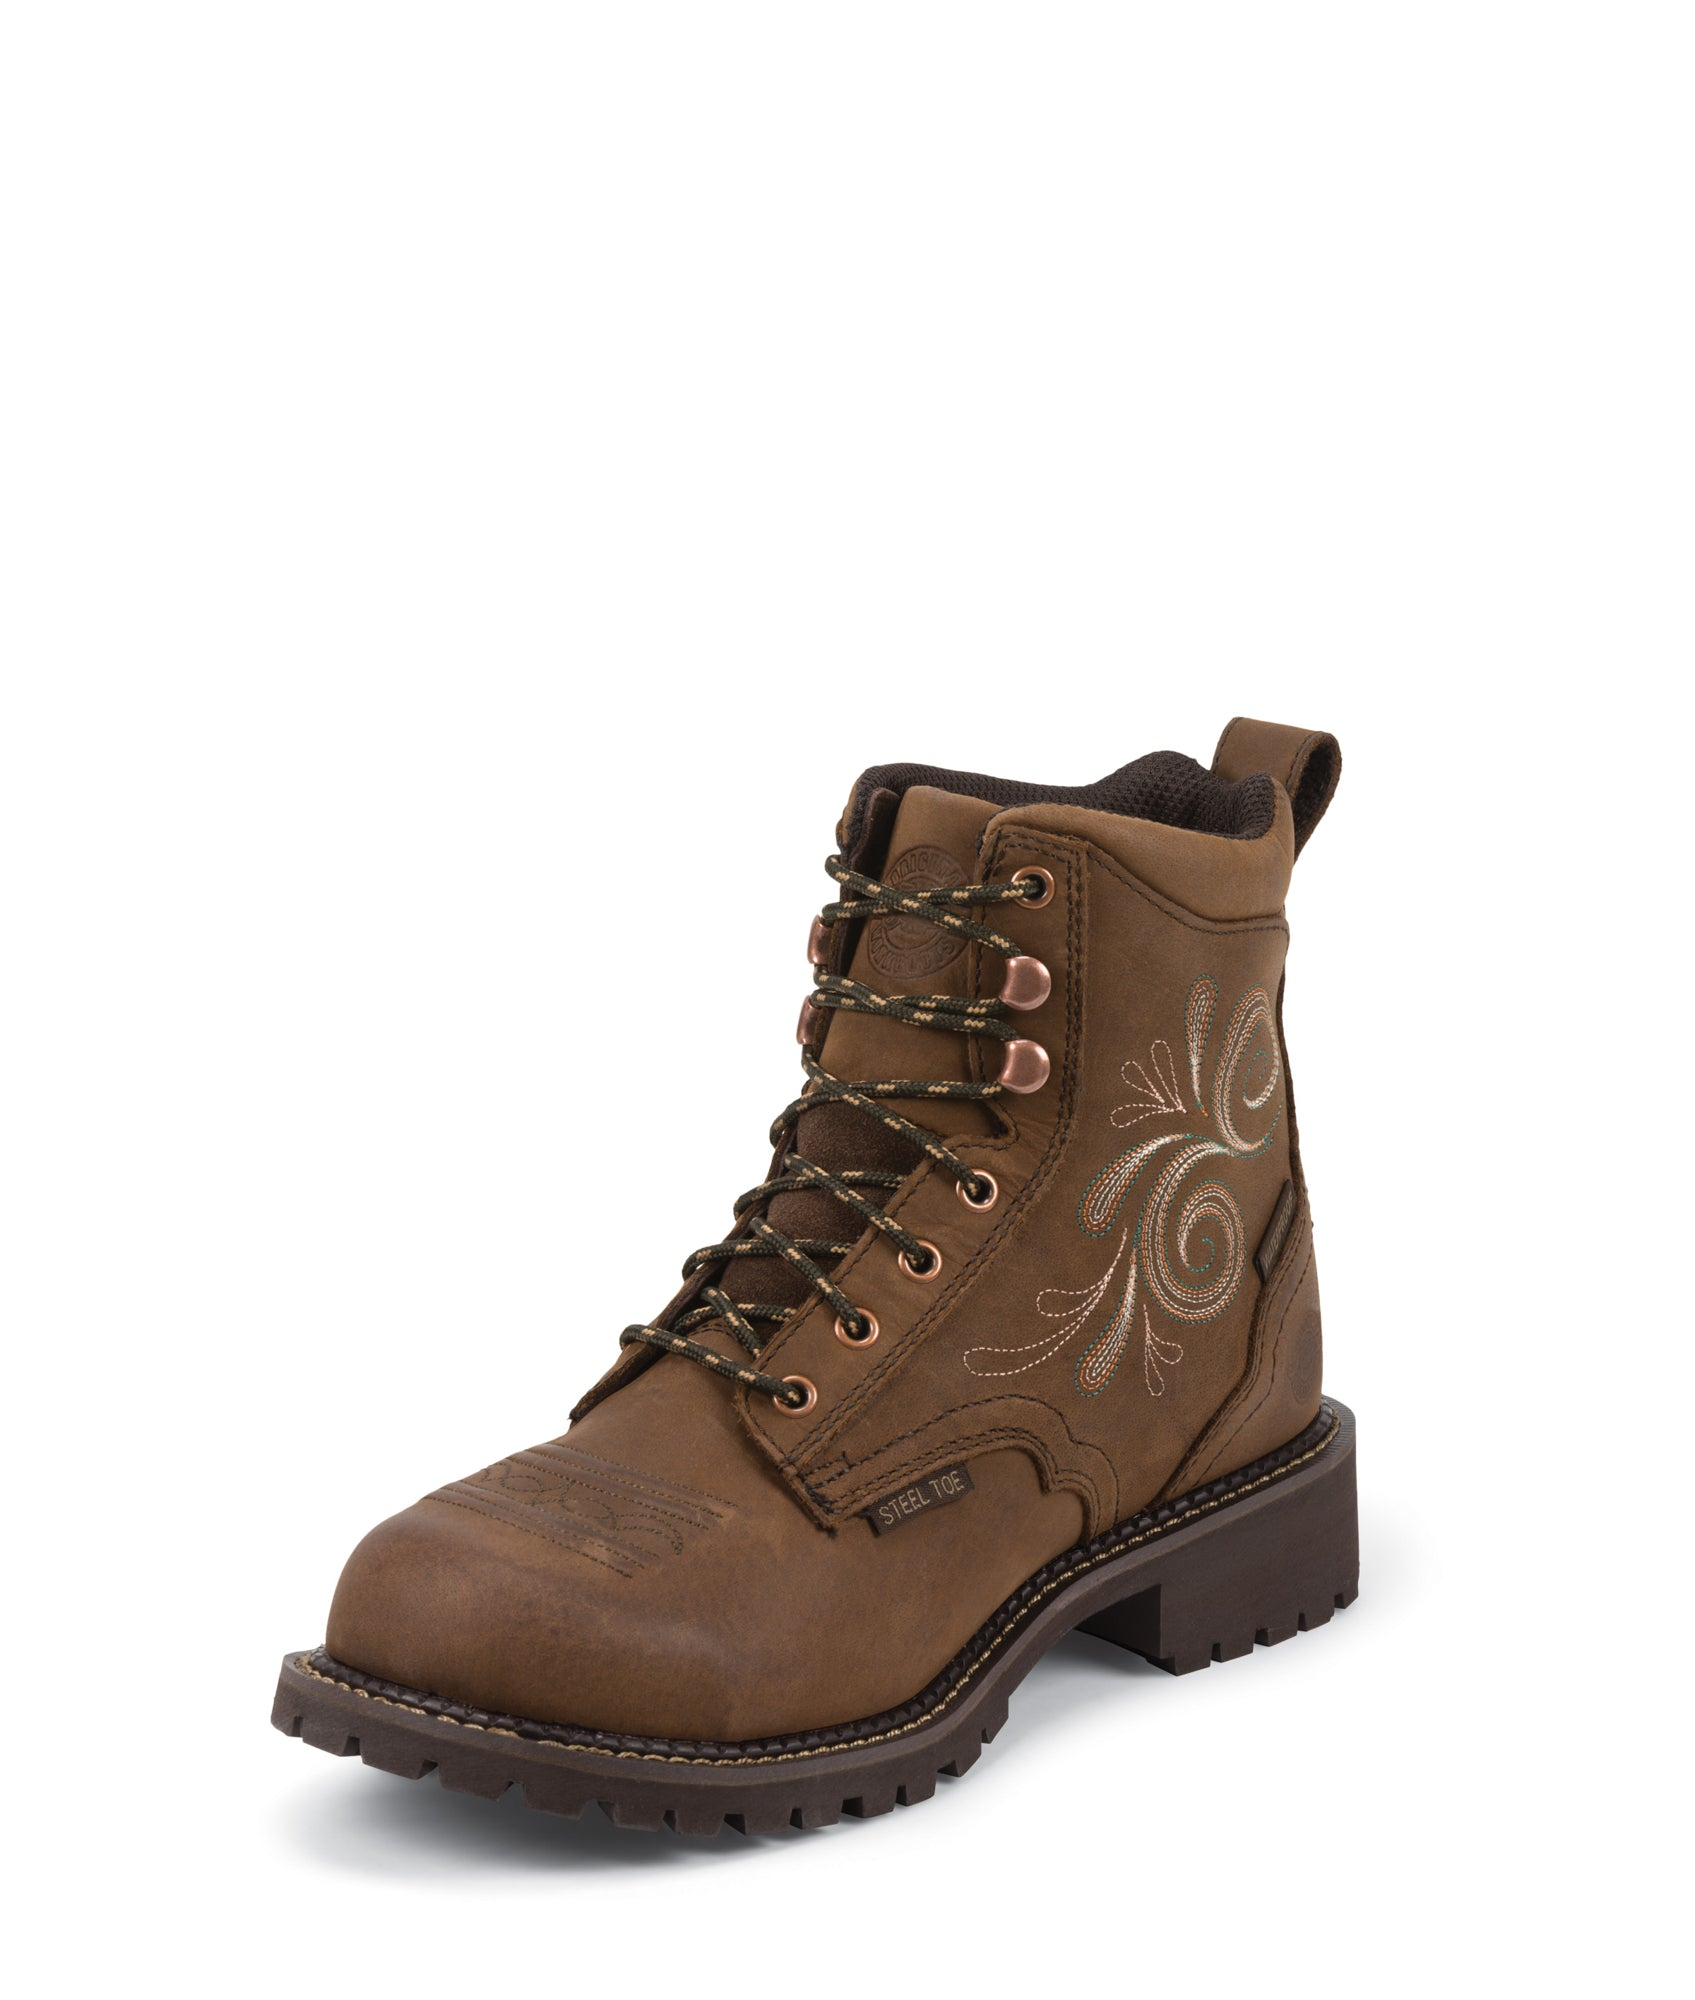 374604dd8d99d Justin Womens Bark Leather Work Boots WP Steel Toe Lace-Up 6in